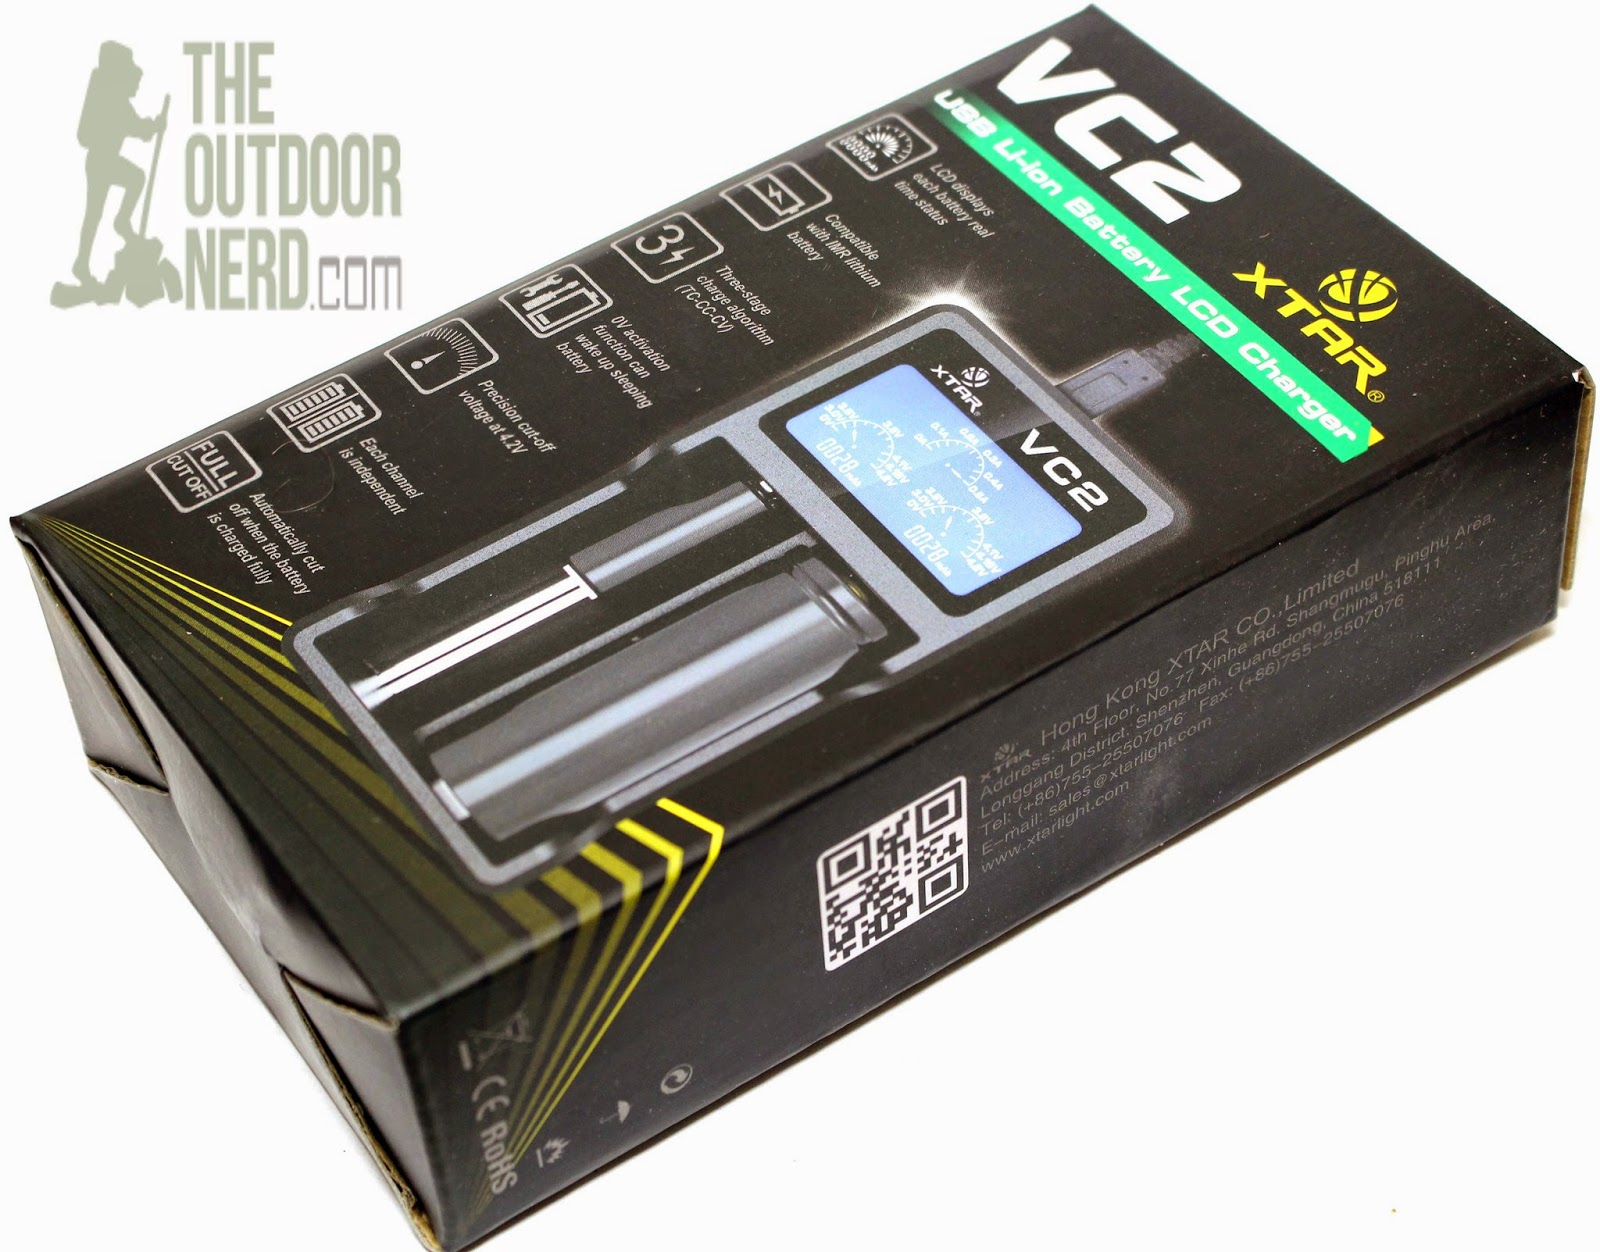 XTAR VC2 Lithium-Ion USB Charger - Box 1